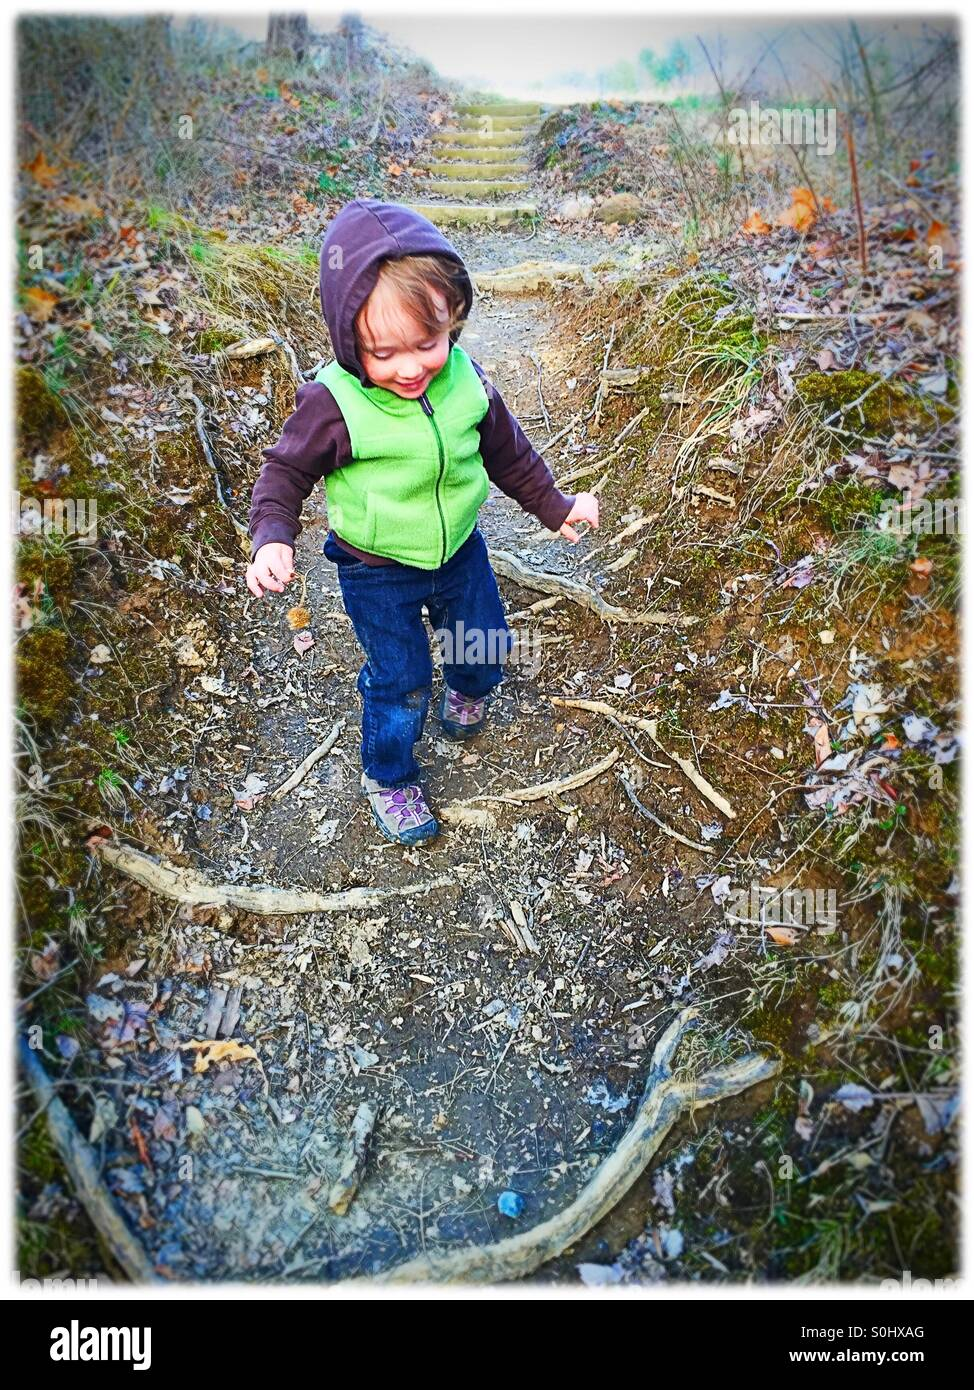 Toddler on a hike - Stock Image